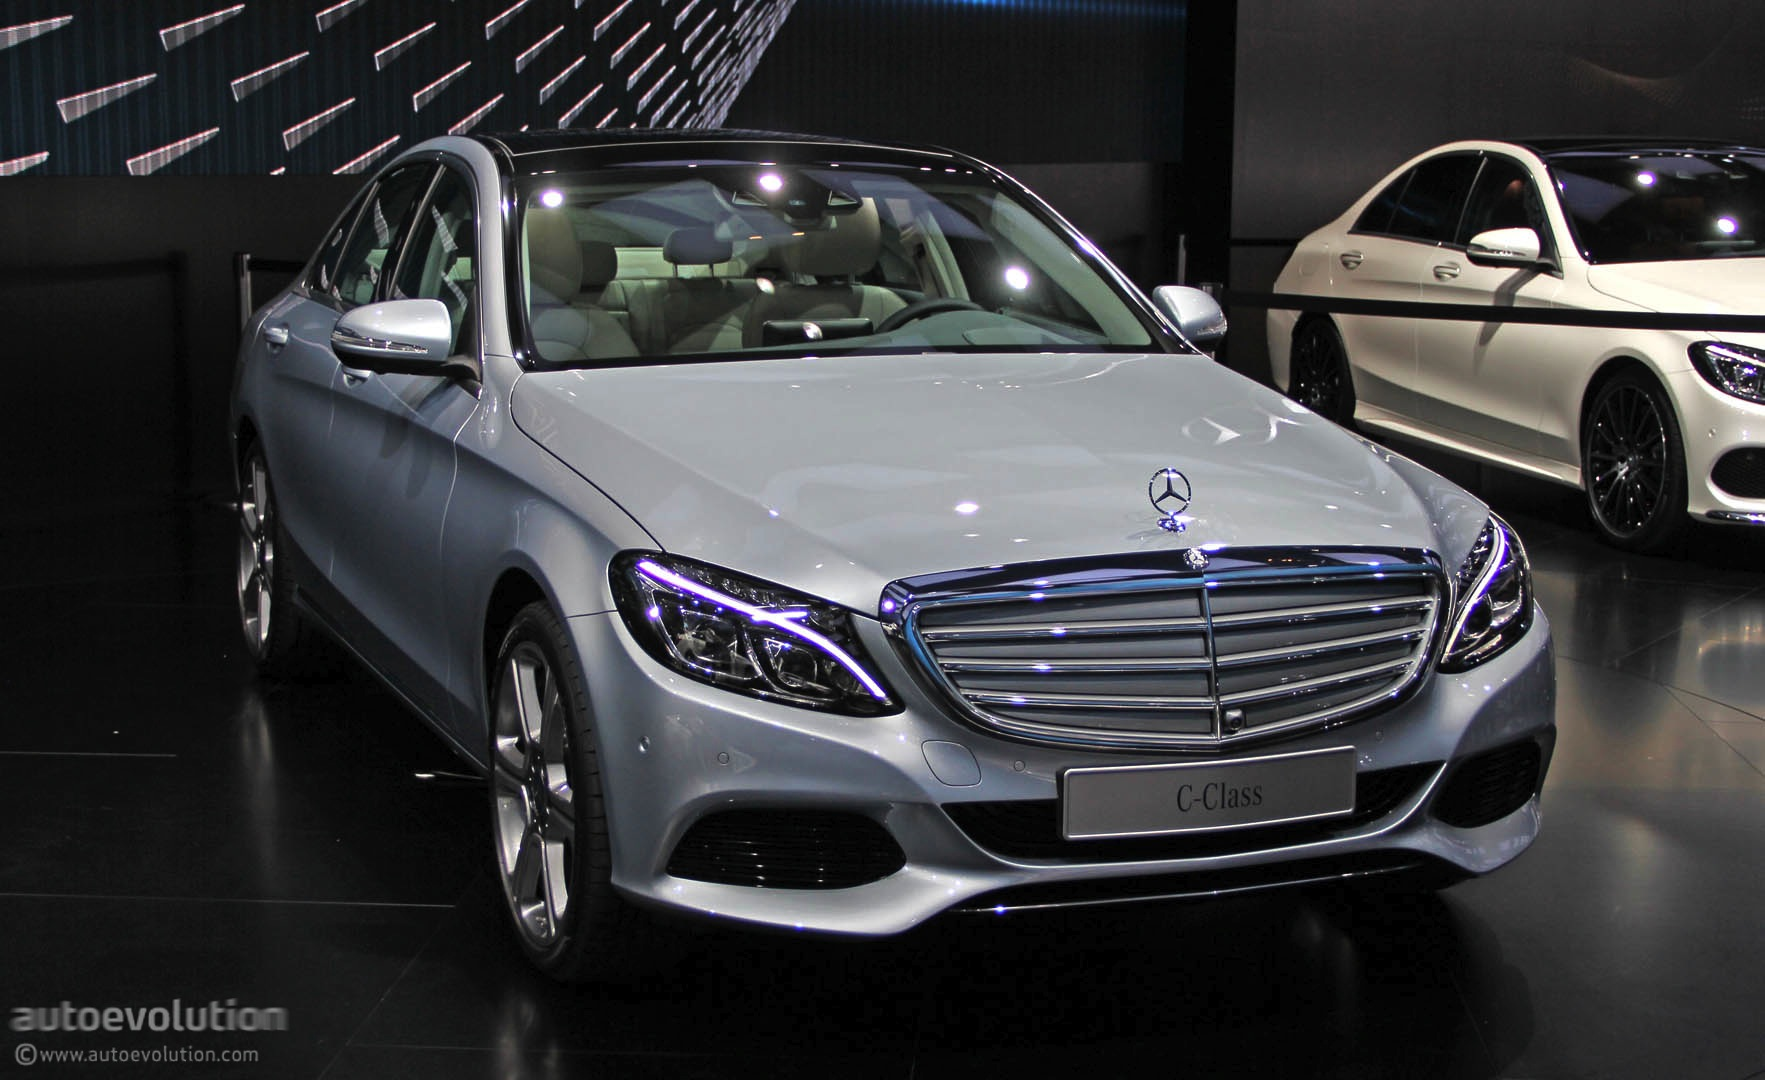 2015 mercedes c-class takes a luxury lead in detroit [live photos